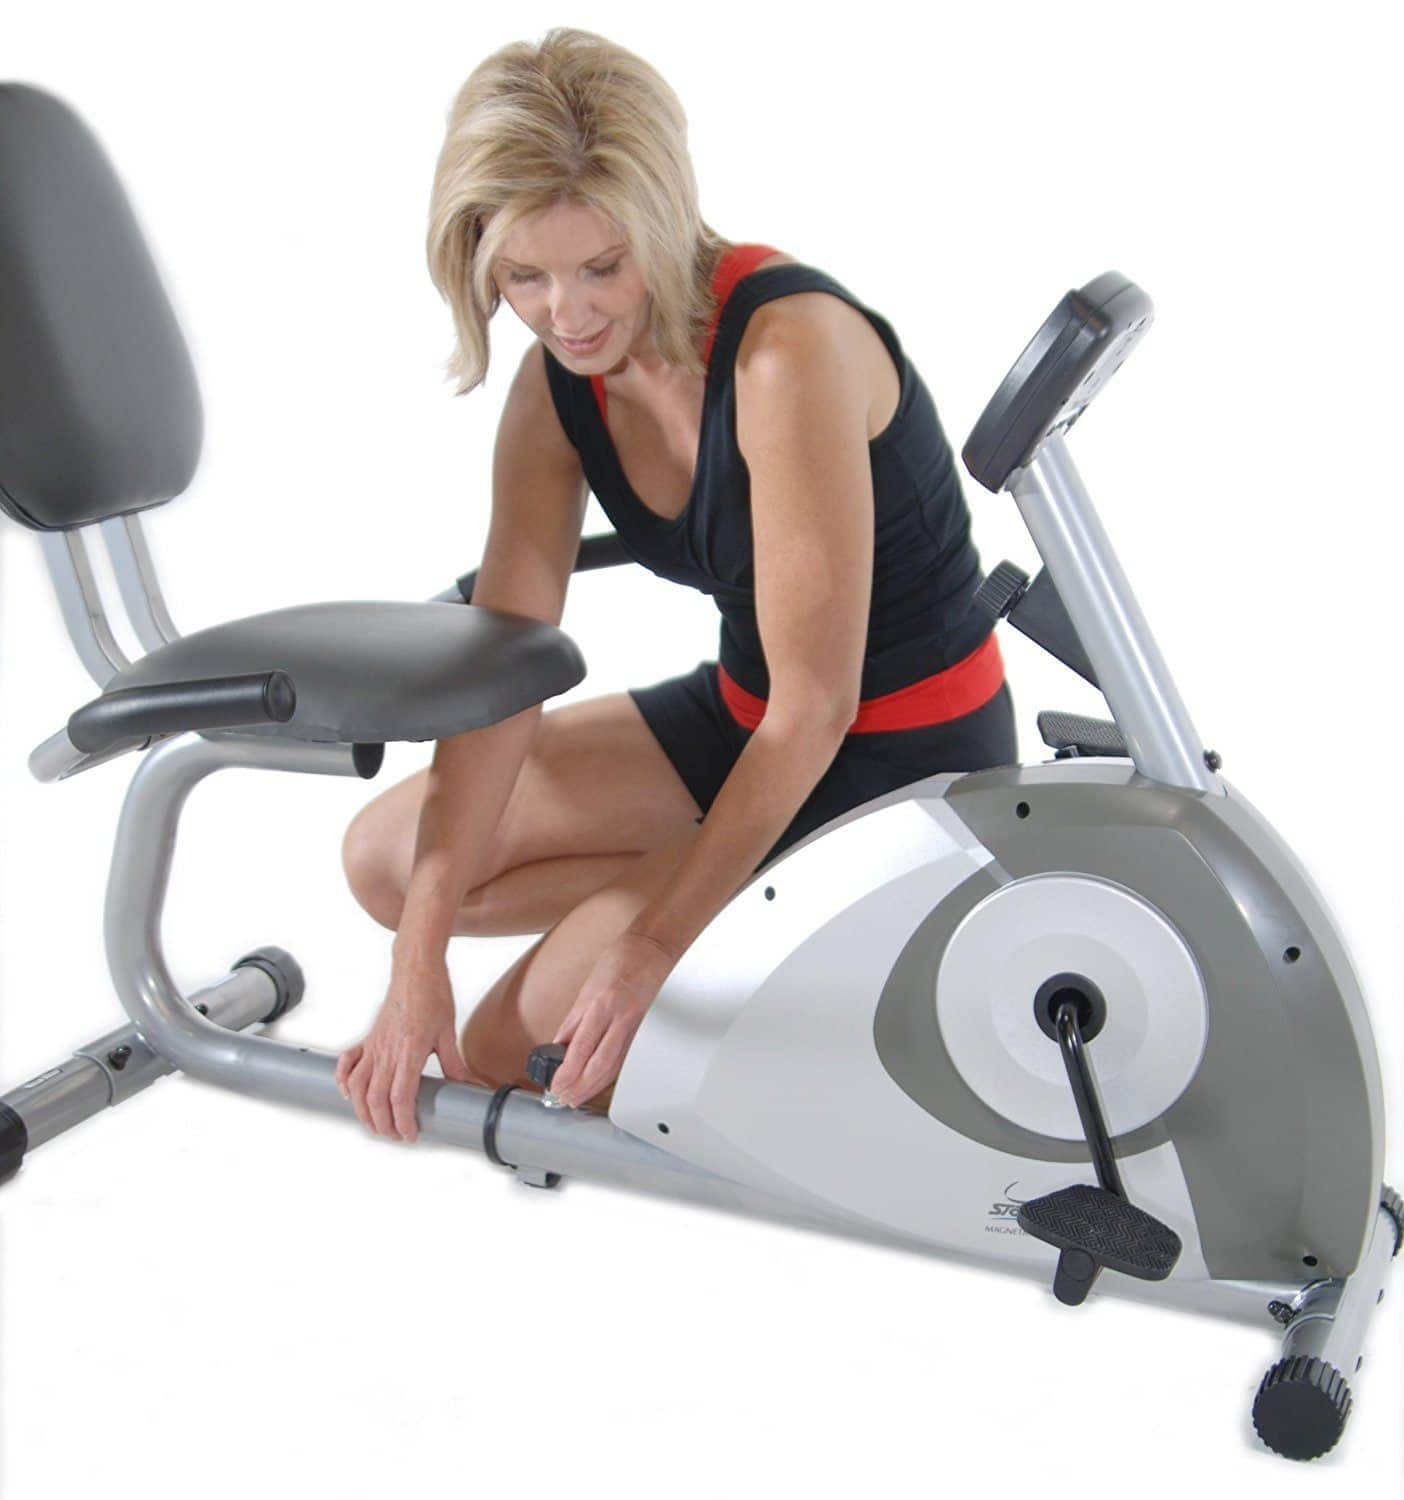 Stamina 1350 recumbent bike adjustment